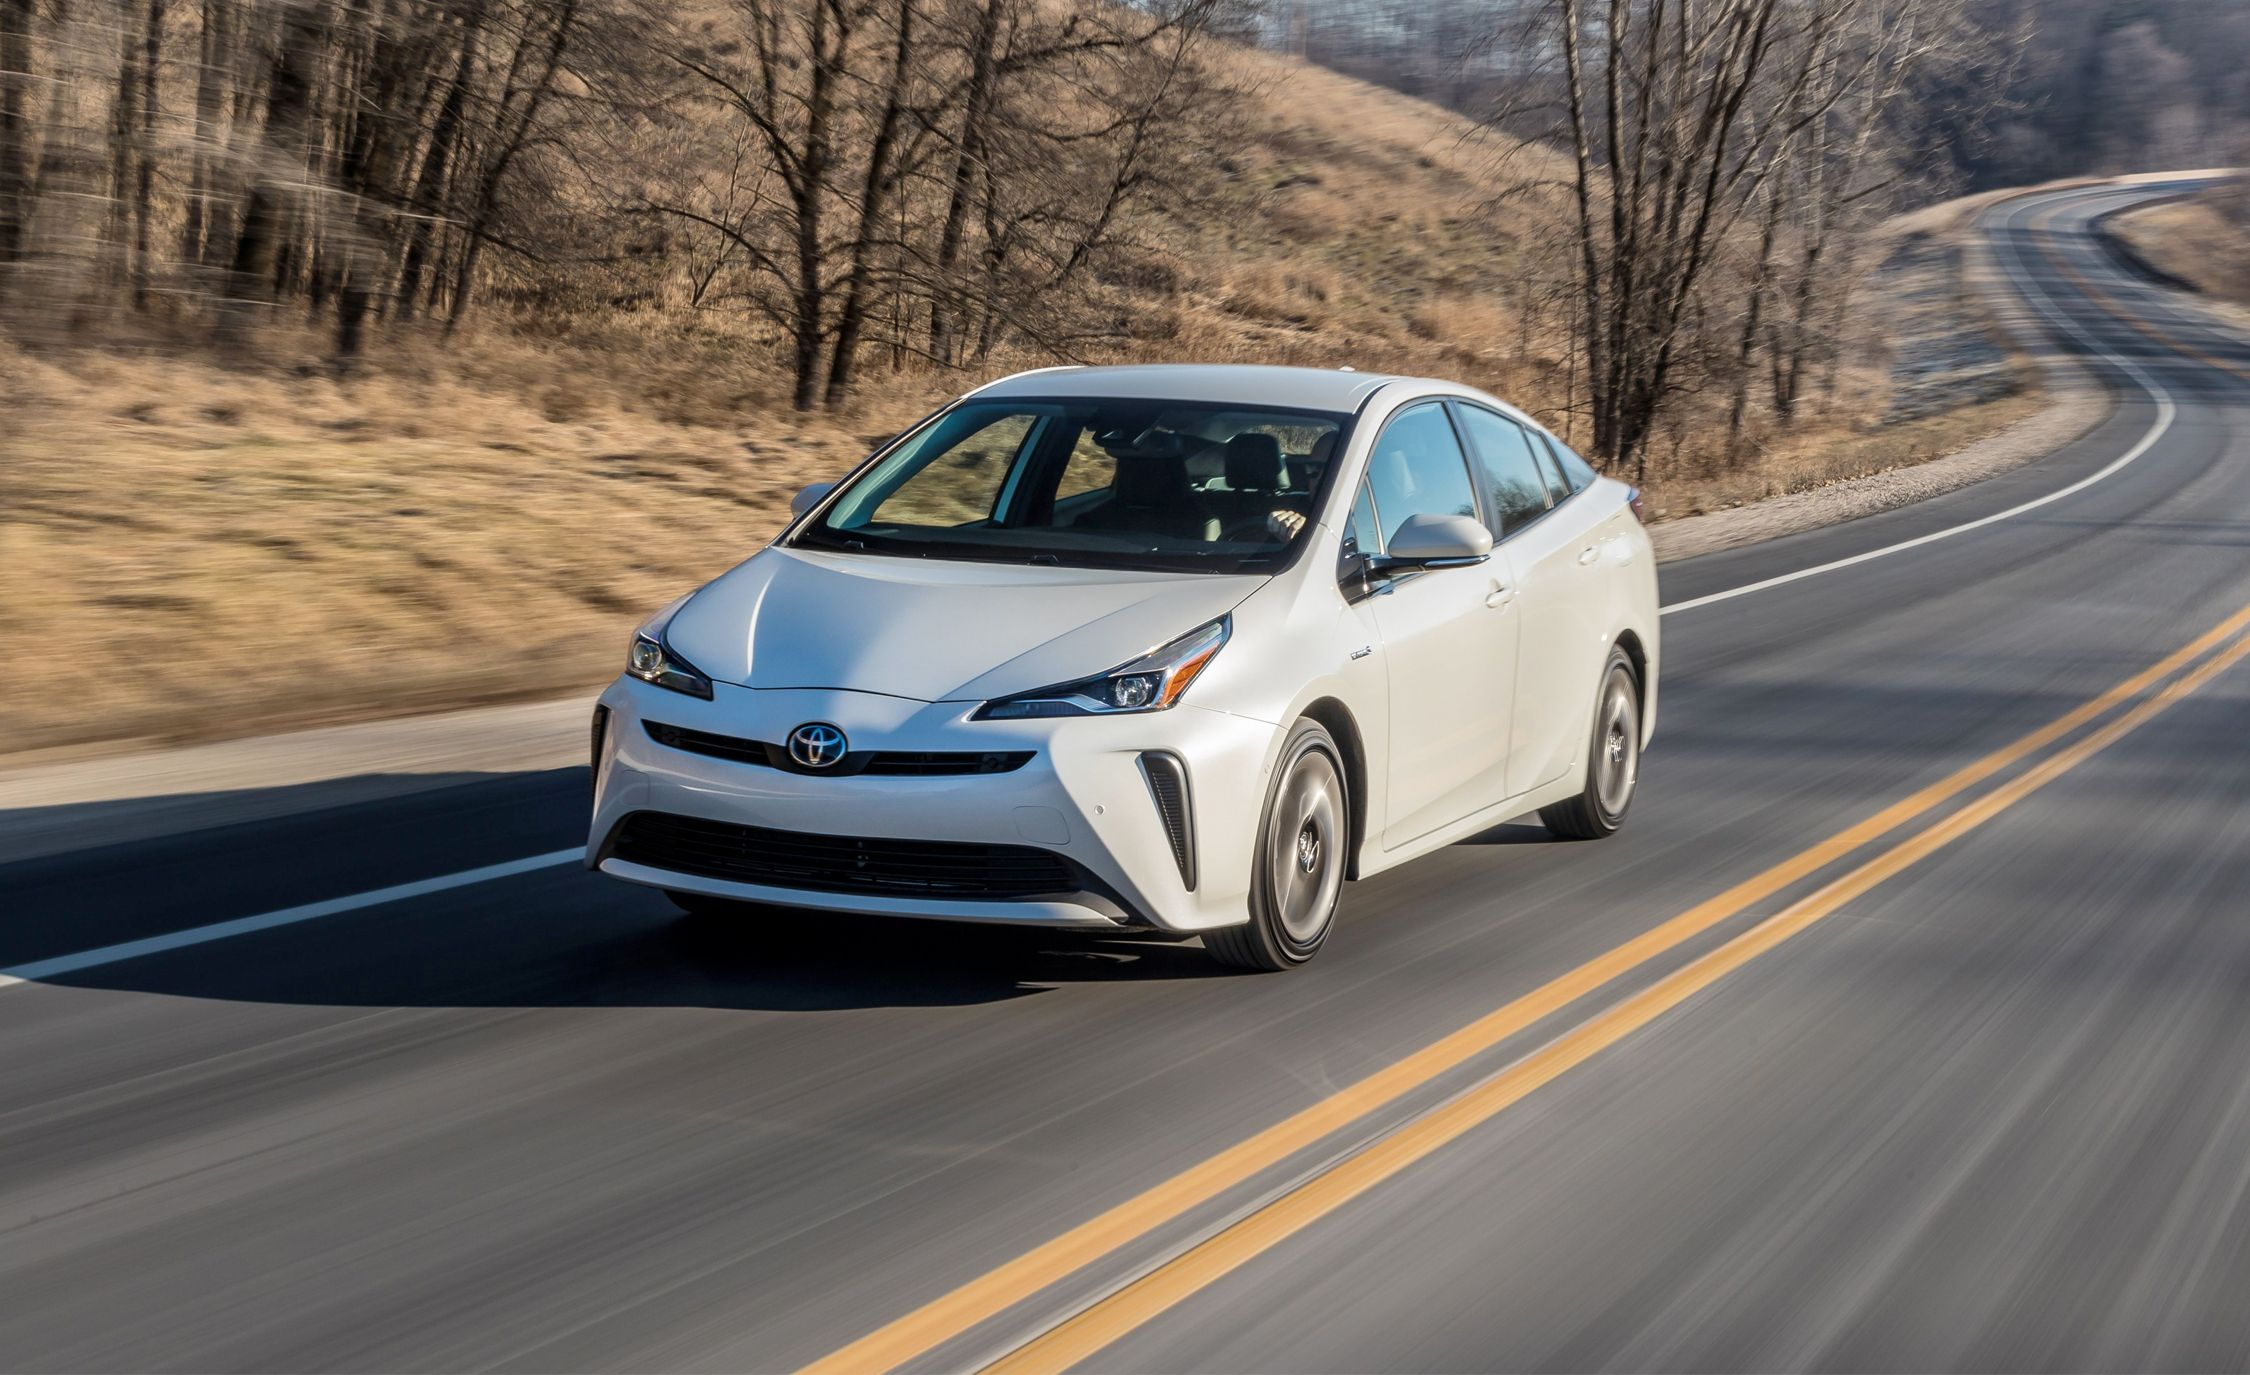 The 2019 Toyota Prius Awd E Brings Better Traction To Brand S Signature Hybrid